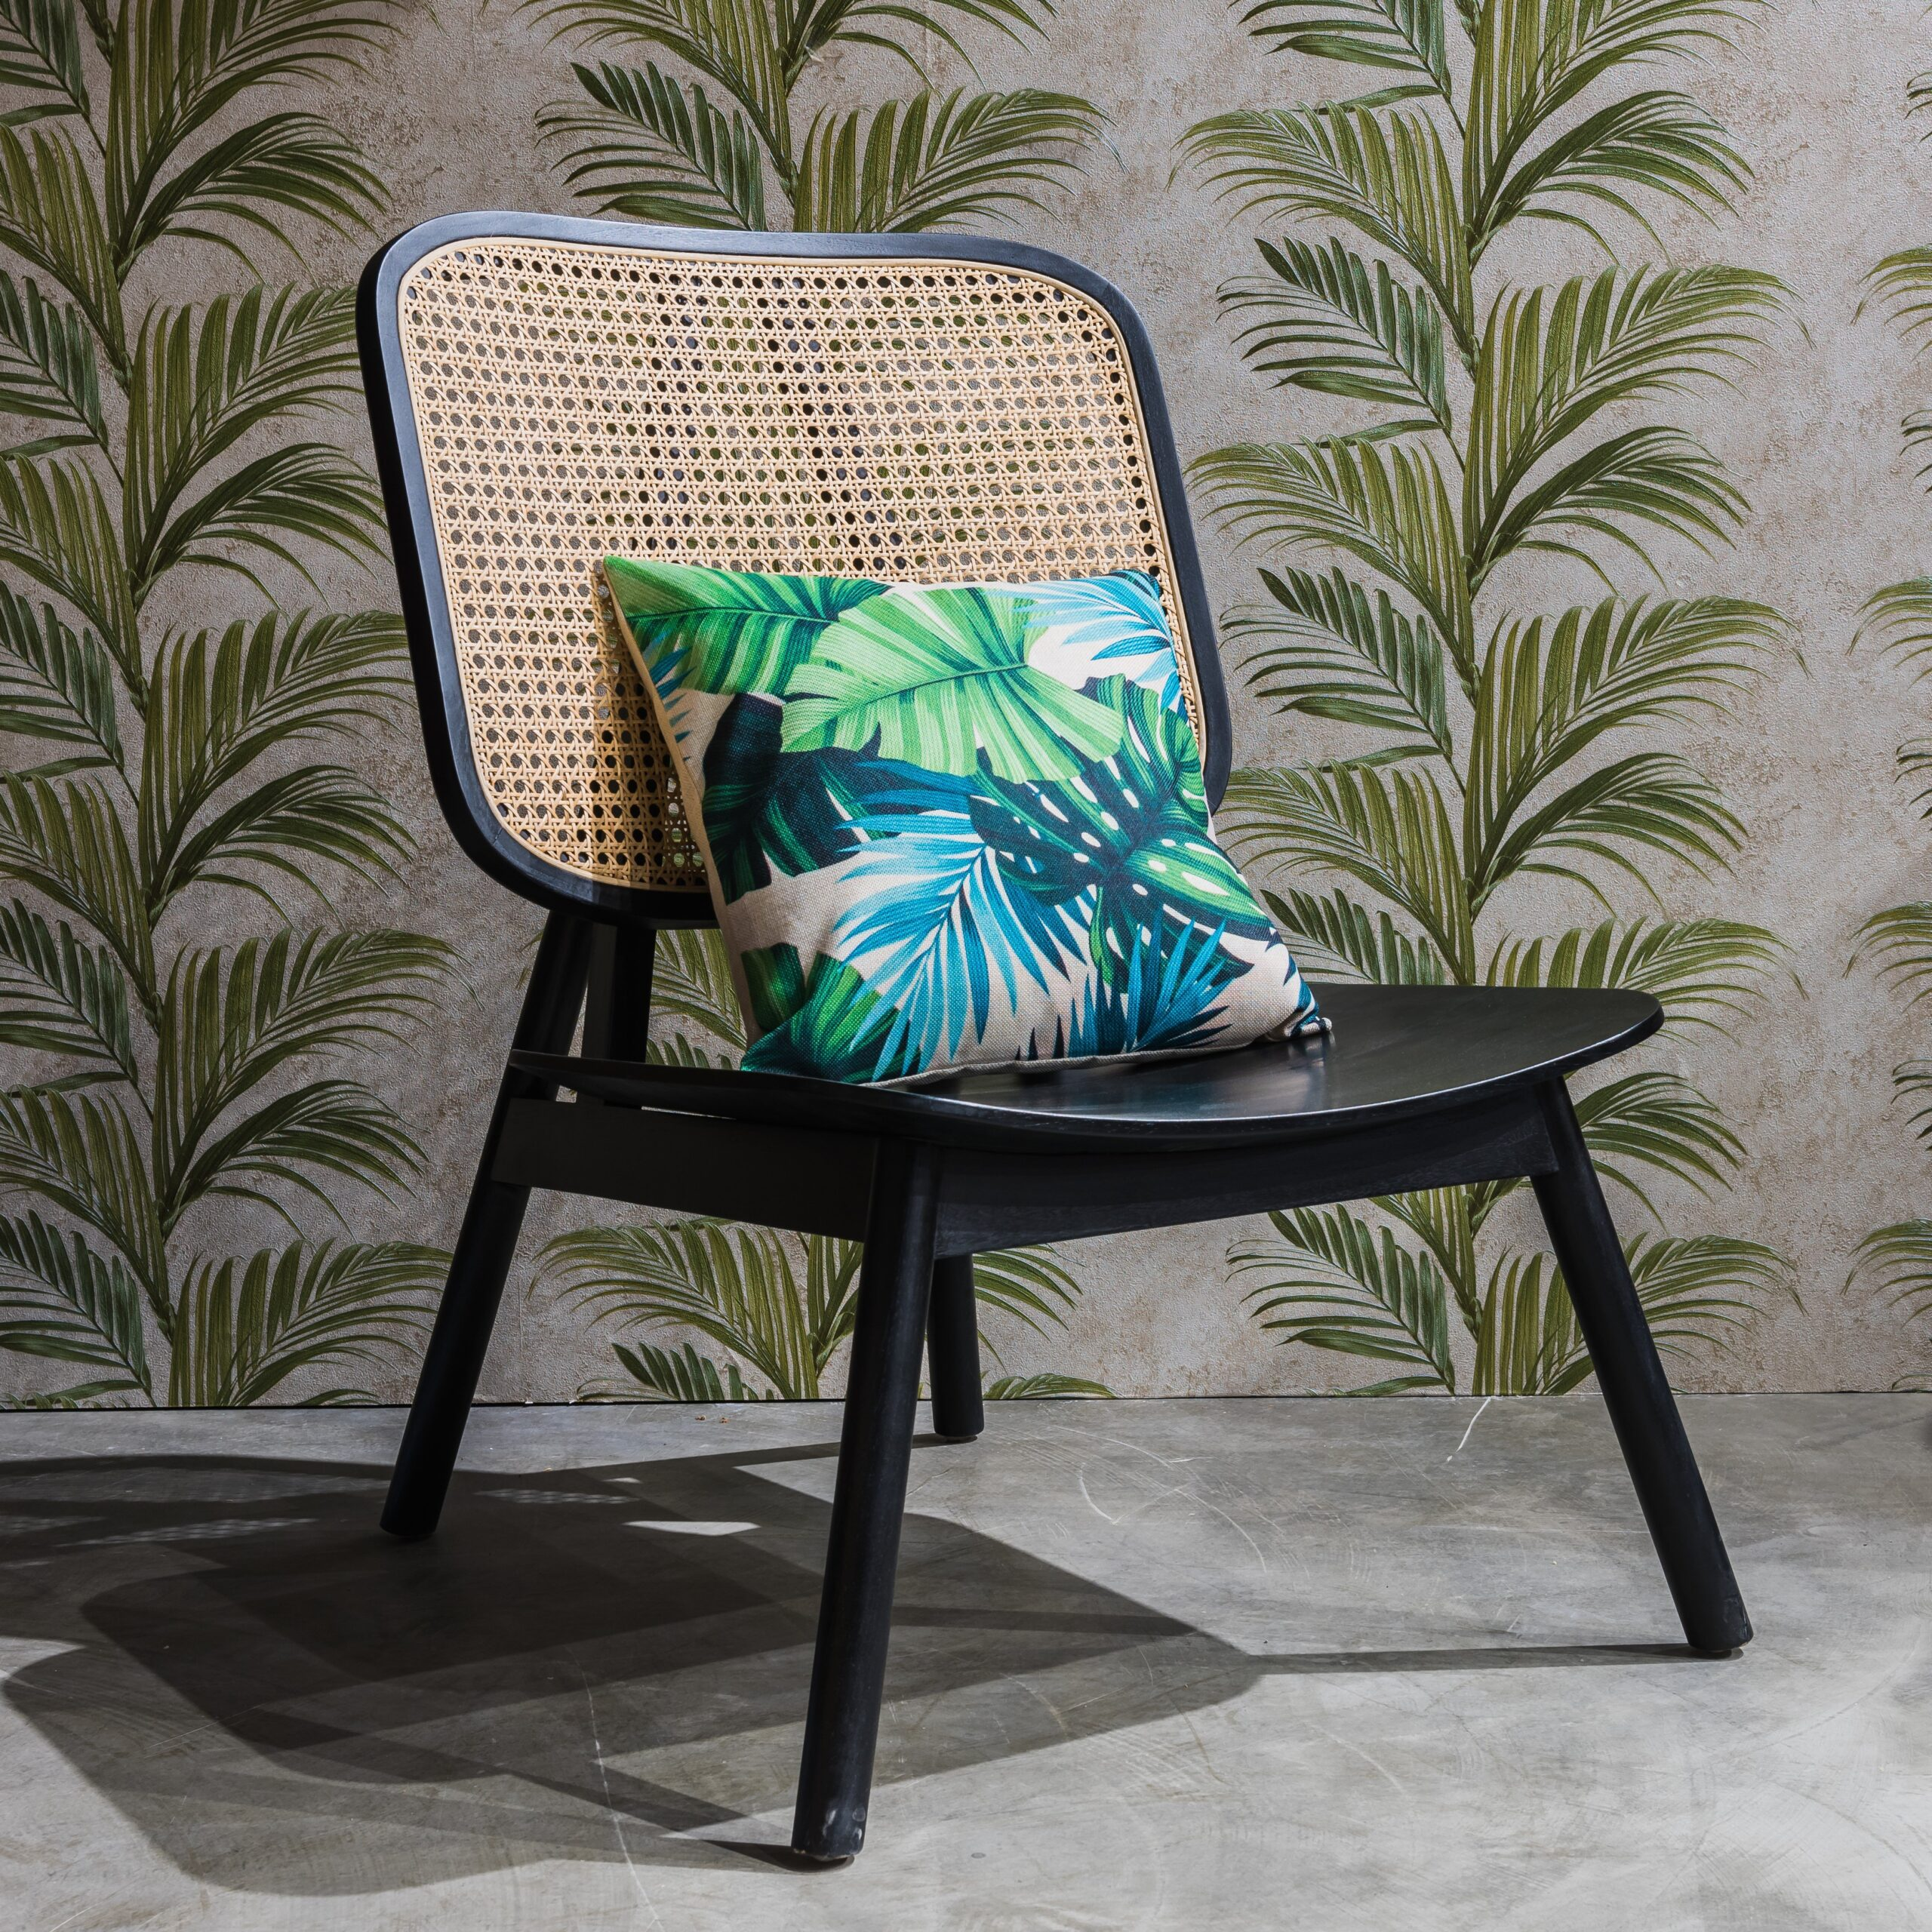 https://woodgreen.ae/wp-content/uploads/2021/10/francesca-lounge-chair-1-scaled-2.jpg